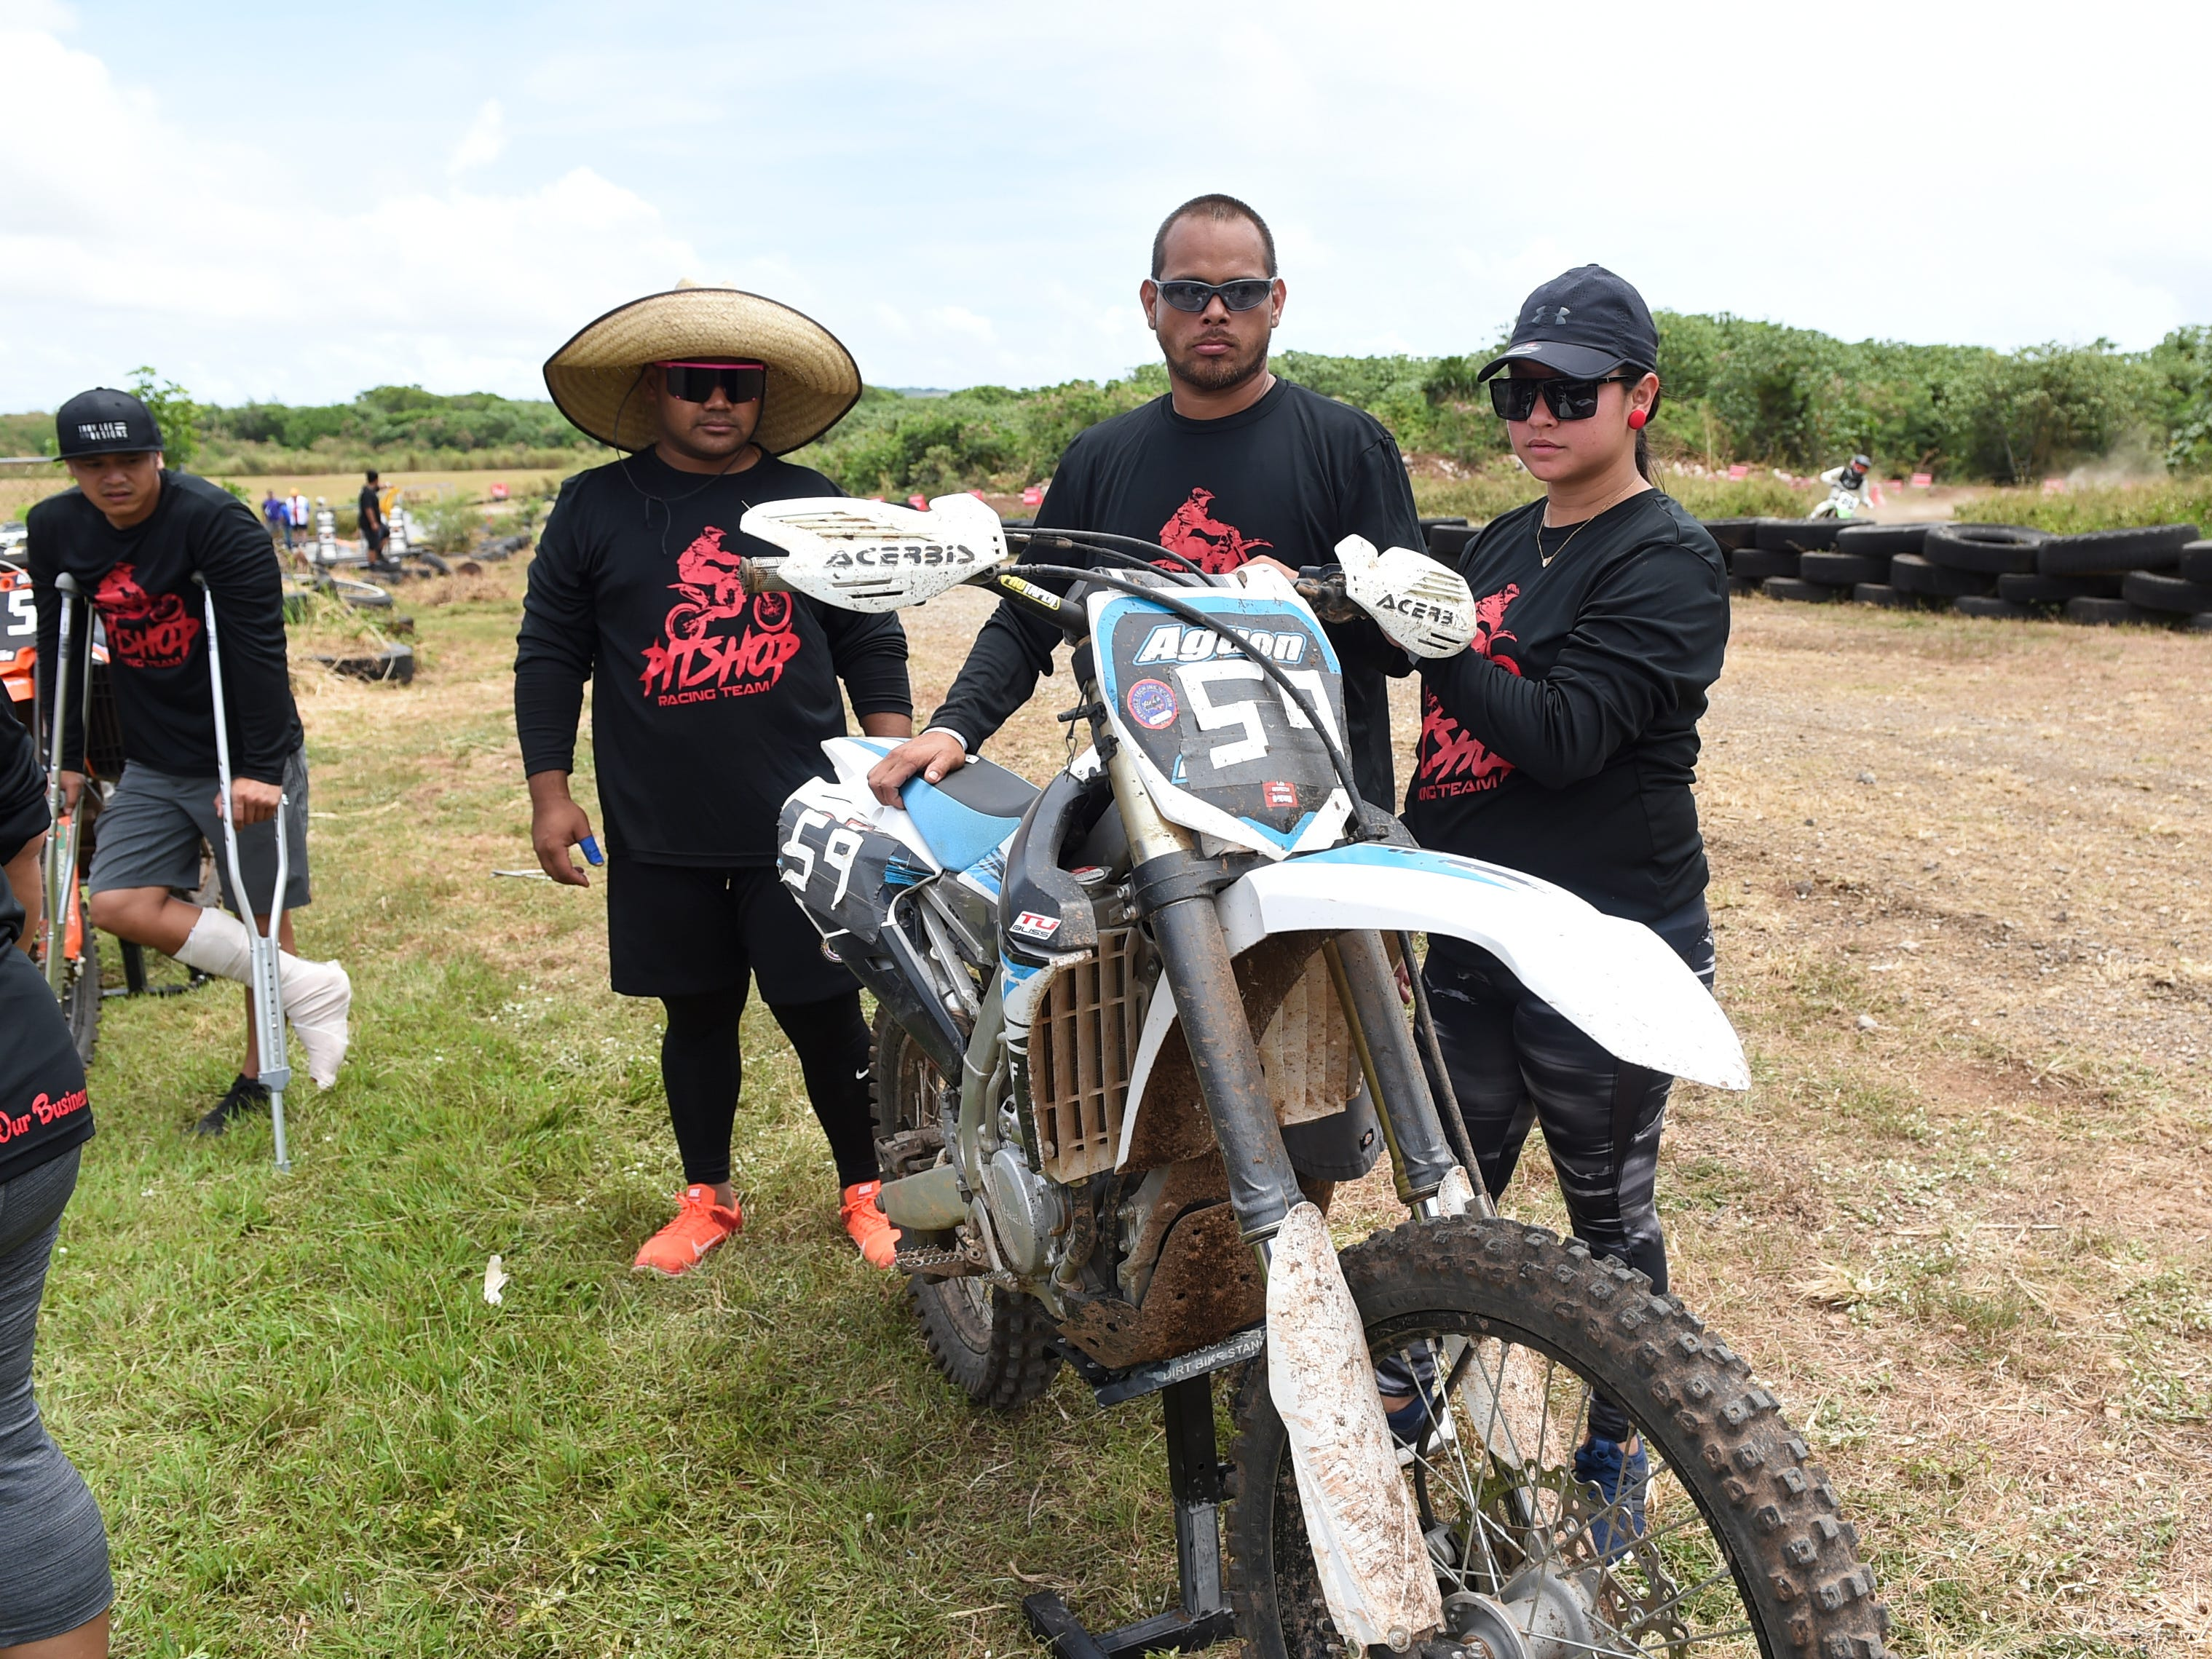 The Pitshop Racing Team crew makes adjustments on their motorcycle during the 39th Annual APL Smokin' Wheels at the Guam International Raceway in Yigo, April 14, 2019.